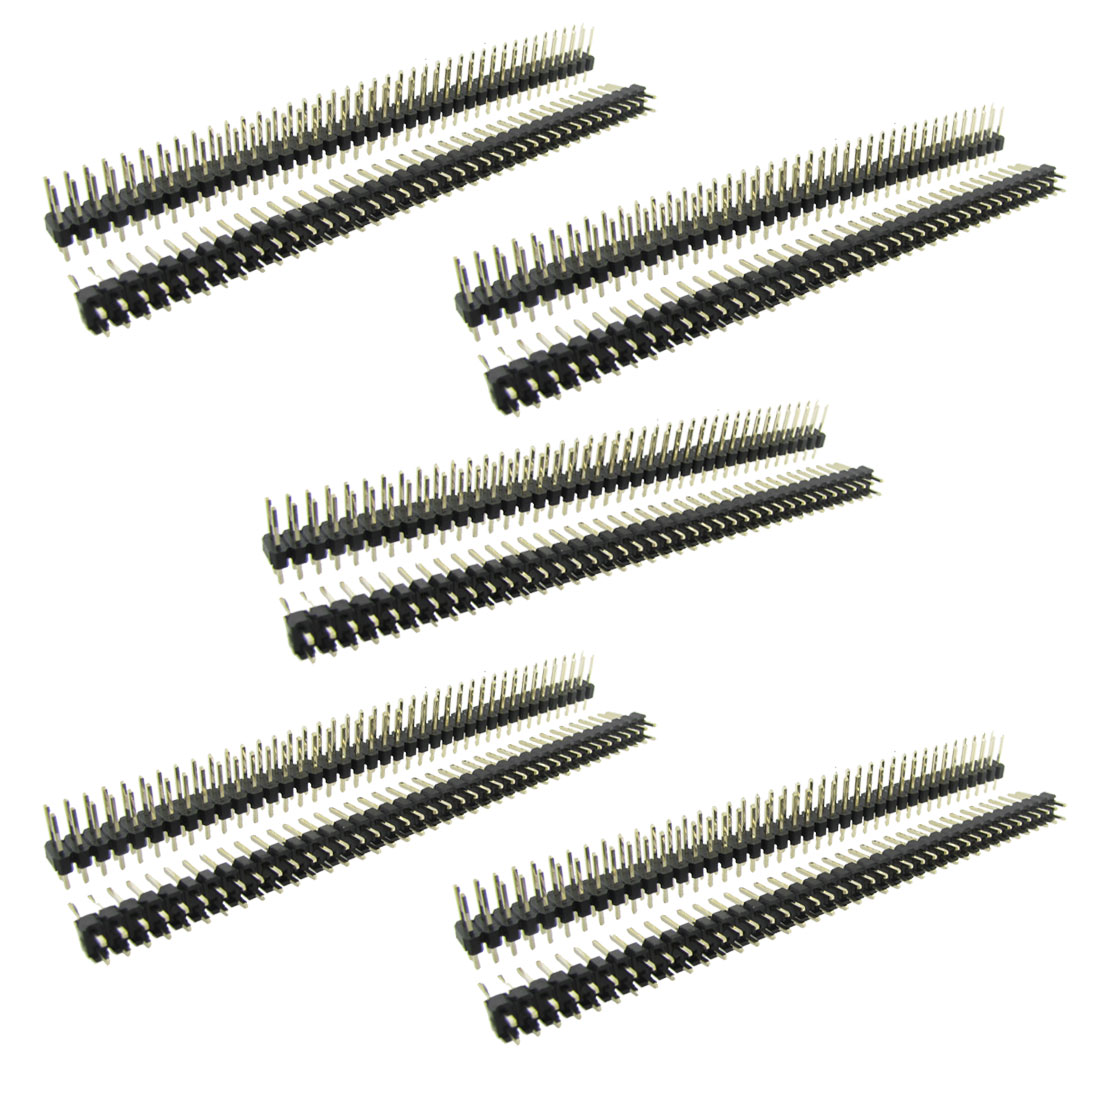 10 Pcs 2x40 Pin 2.54mm Pitch Double Row PCB Pin Headers